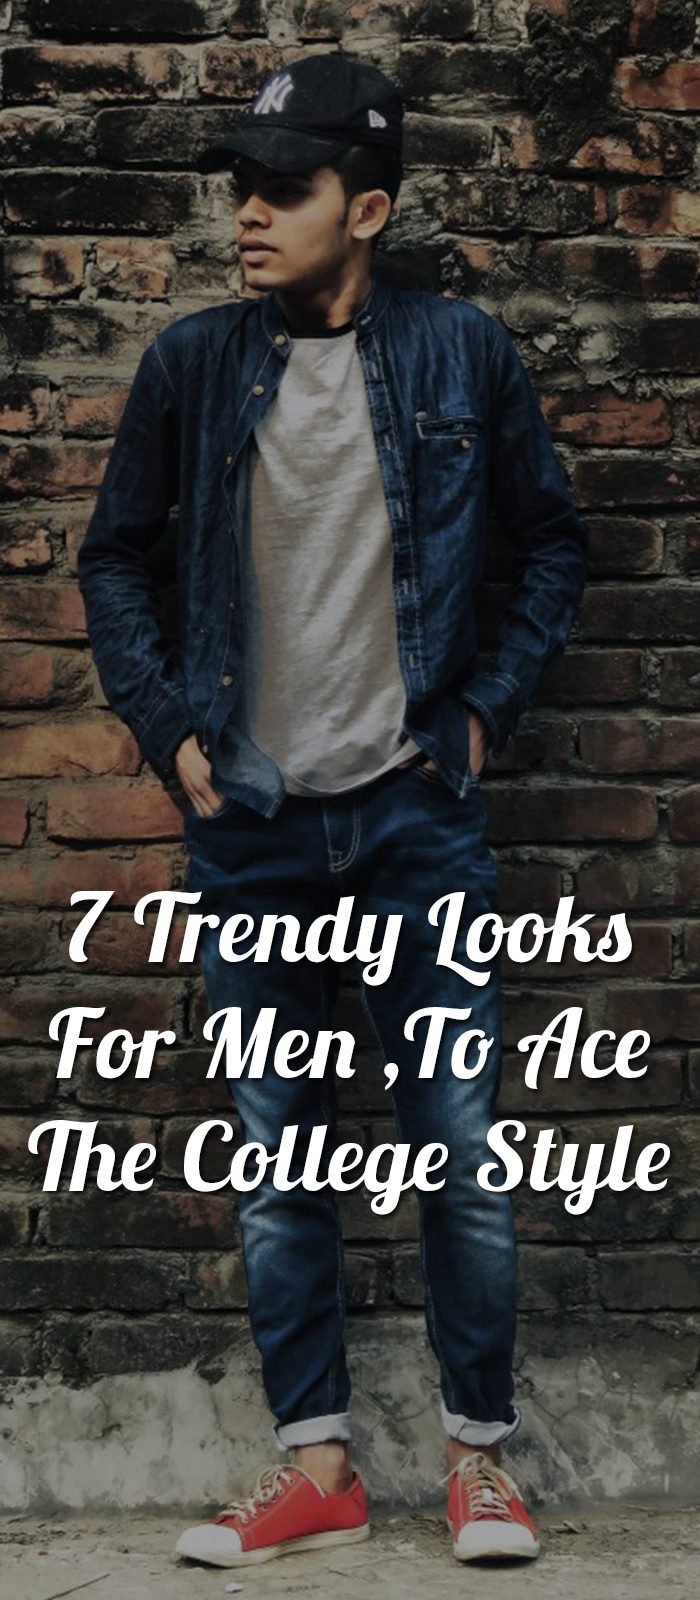 7-Trendy-Looks-For-Men-To-Ace-The-College-Style